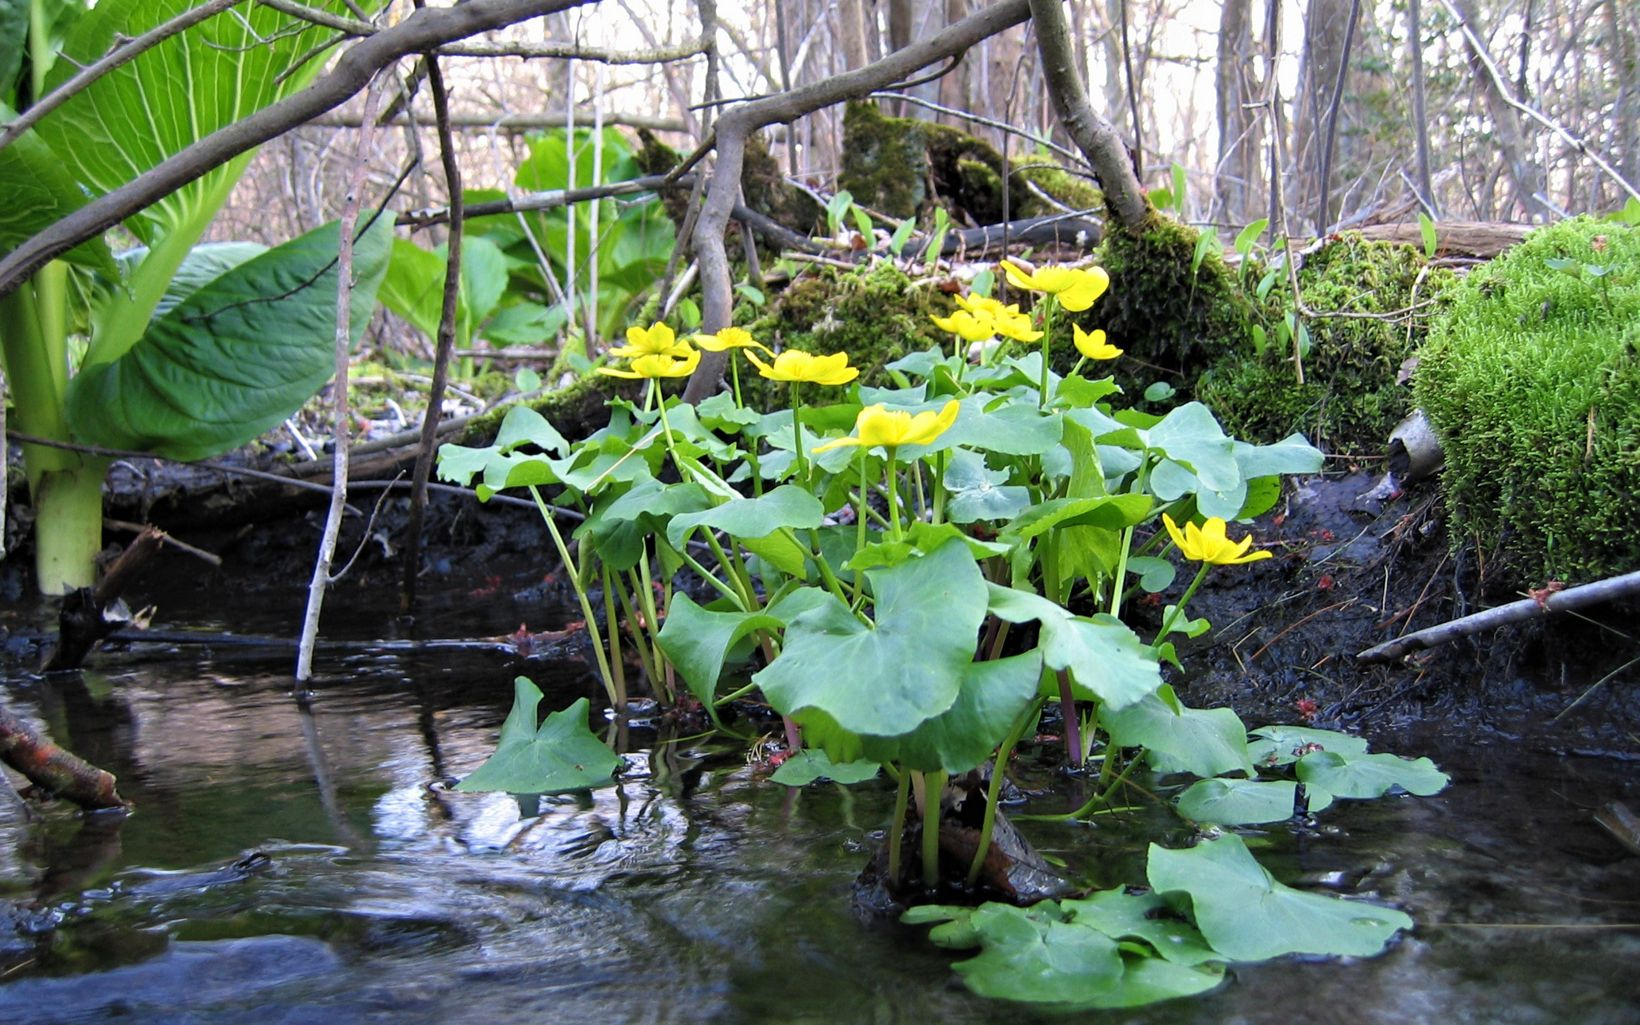 A small green plant with yellow flowers, growing from a streambank.